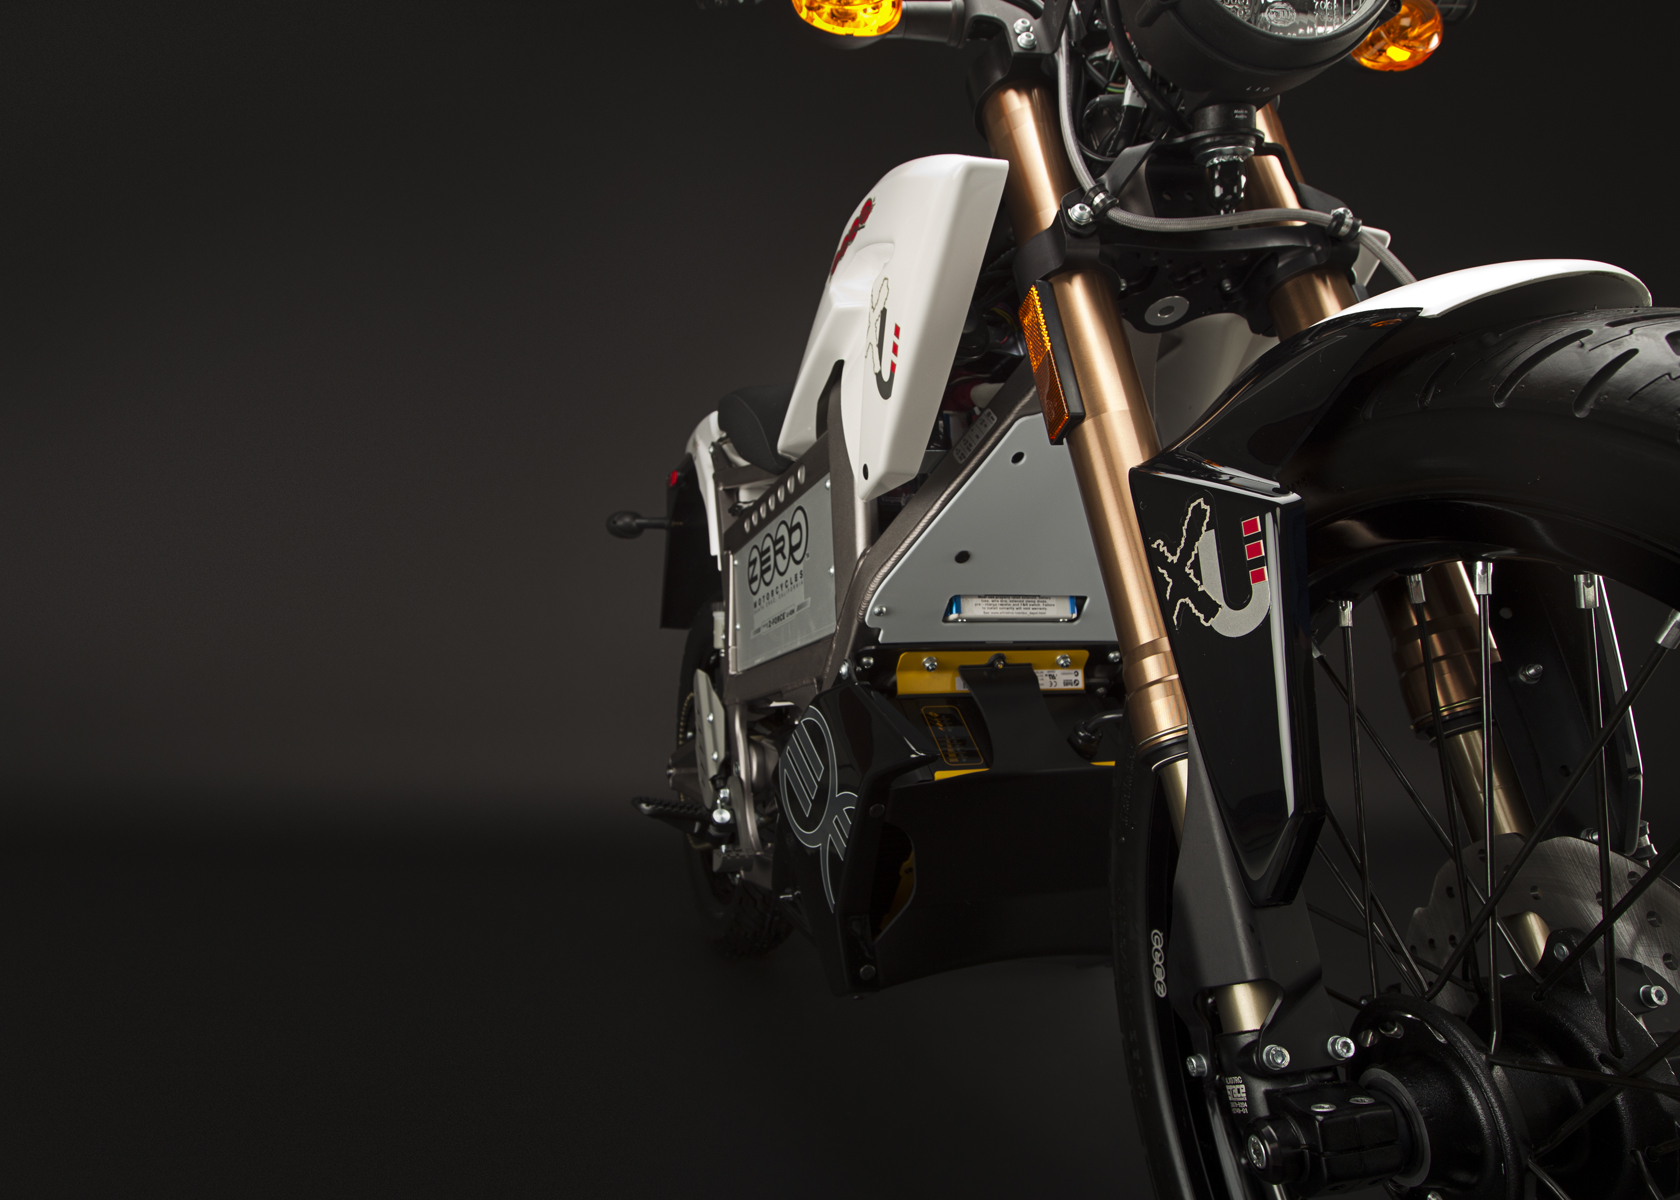 '.2011 Zero XU Electric Motorcycle: Front Fork.'